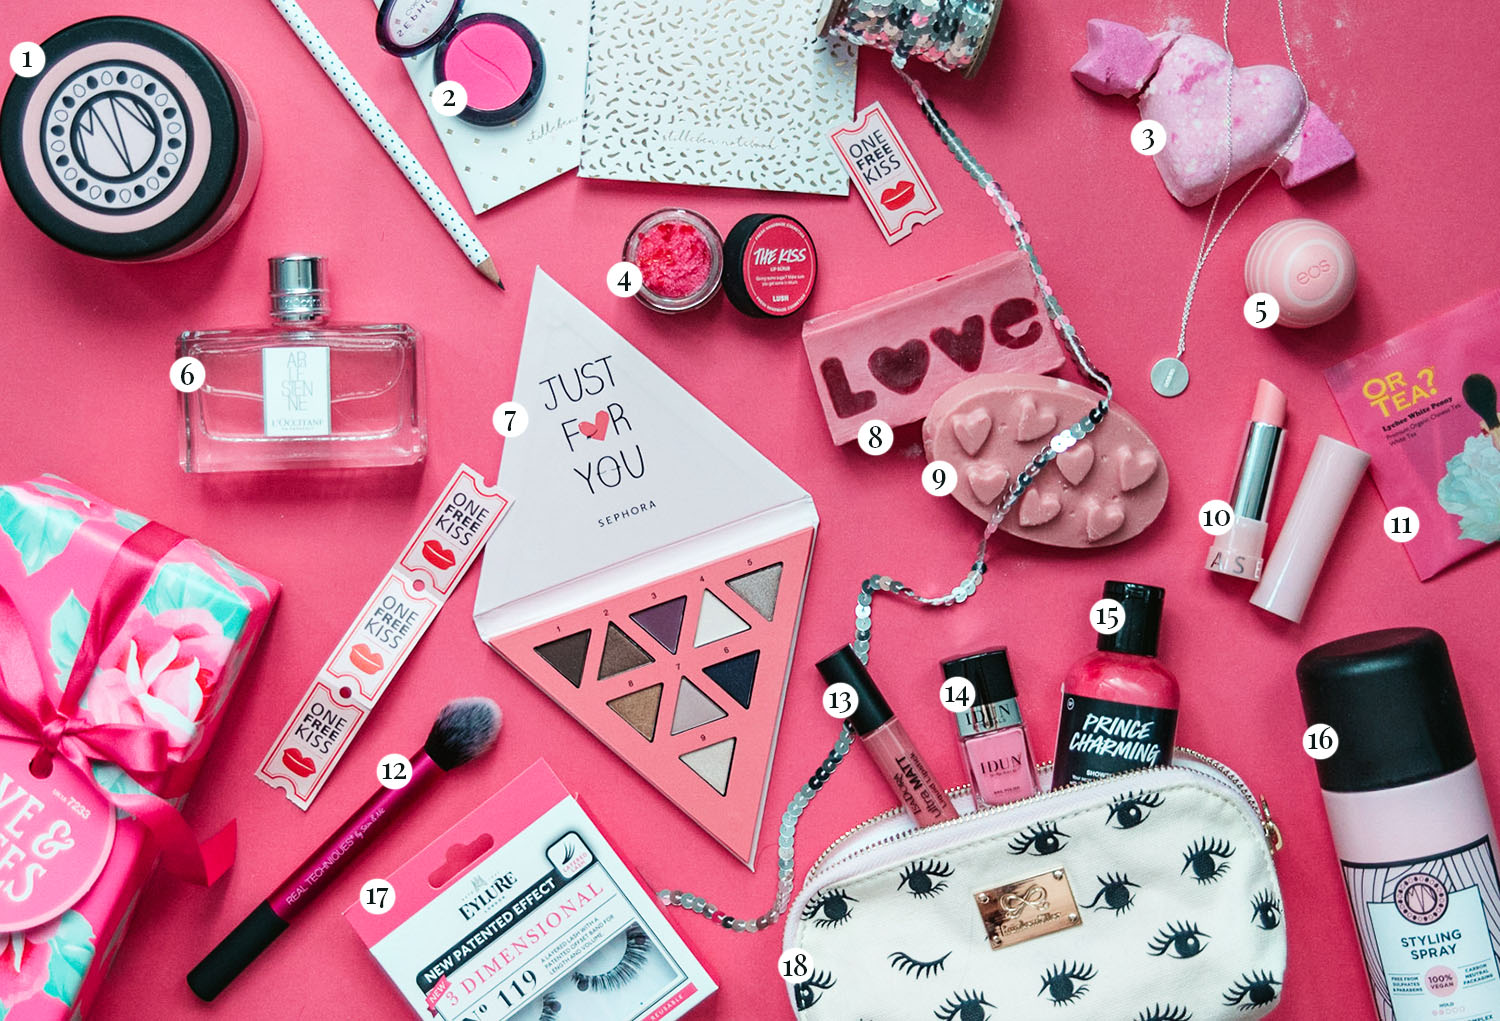 Flatlay with Pink Products to Treat Yourself on Valentine's Day / Alla hjärtans dag-presenter